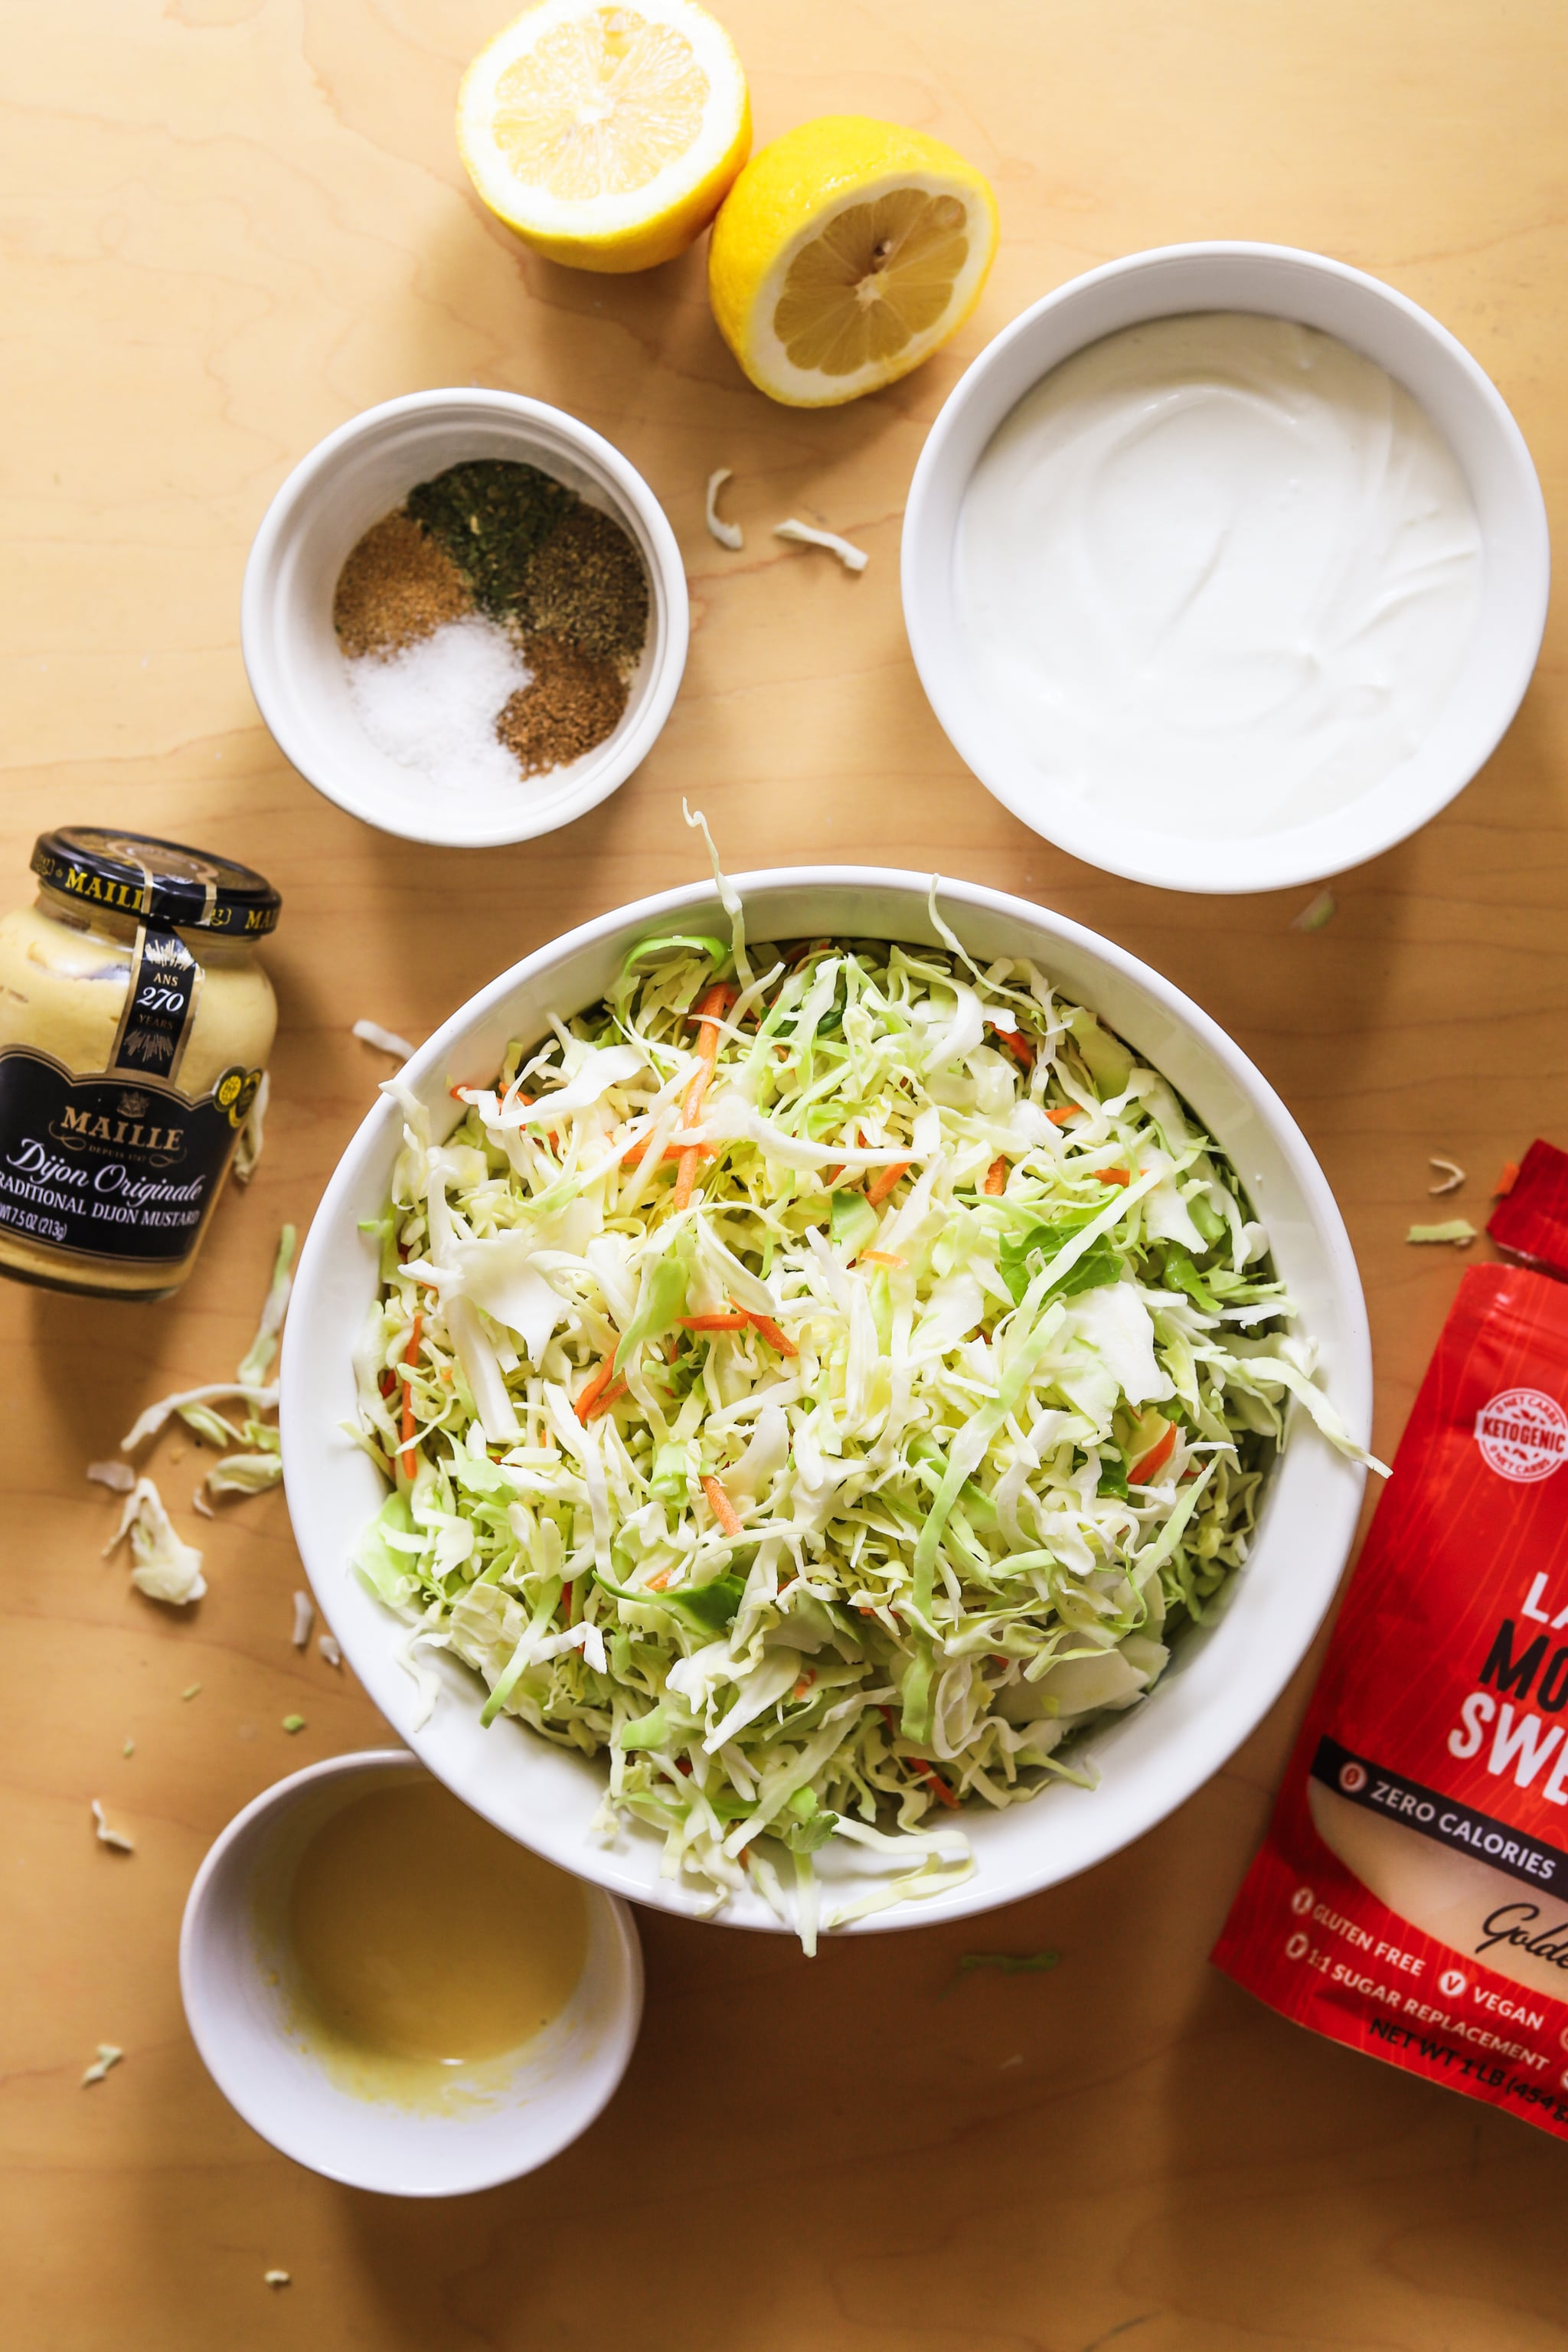 Coleslaw Is a Barbecue Staple, and This Protein-Rich Version Cuts Back on Added Sugars